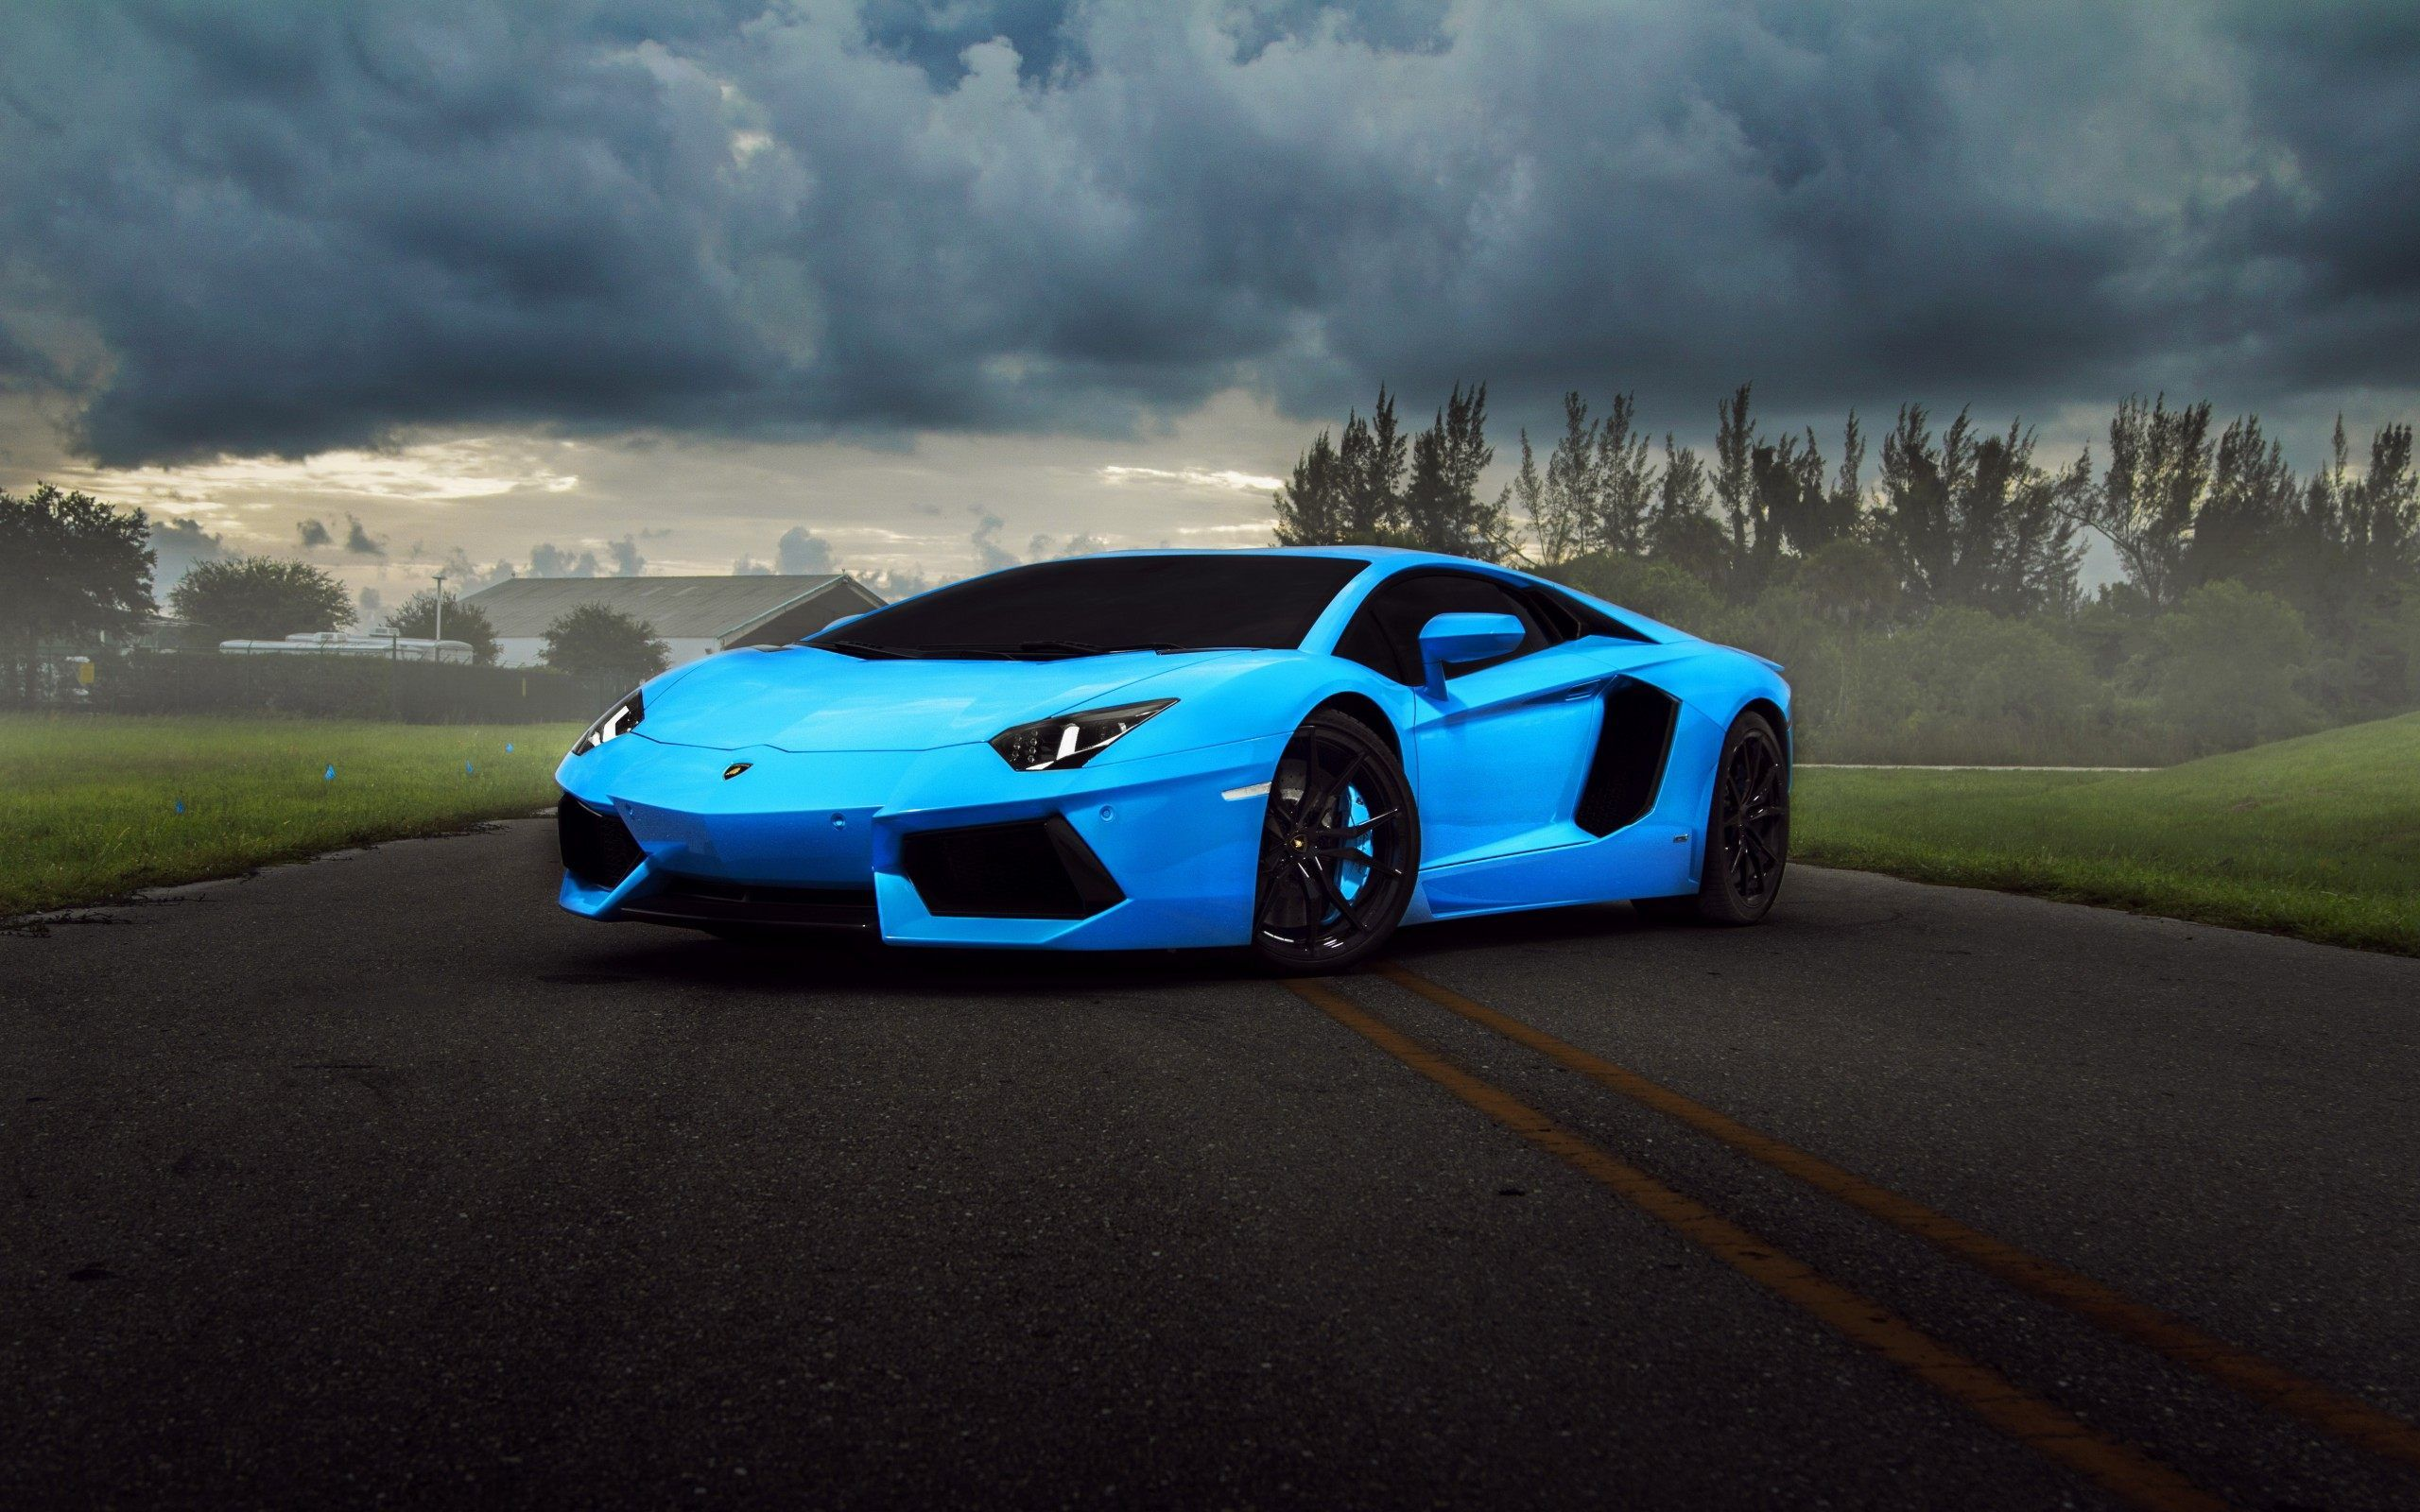 Blue Lamborghini Wallpapers Free Blue Lamborghini Car Wallpapers Super Cars